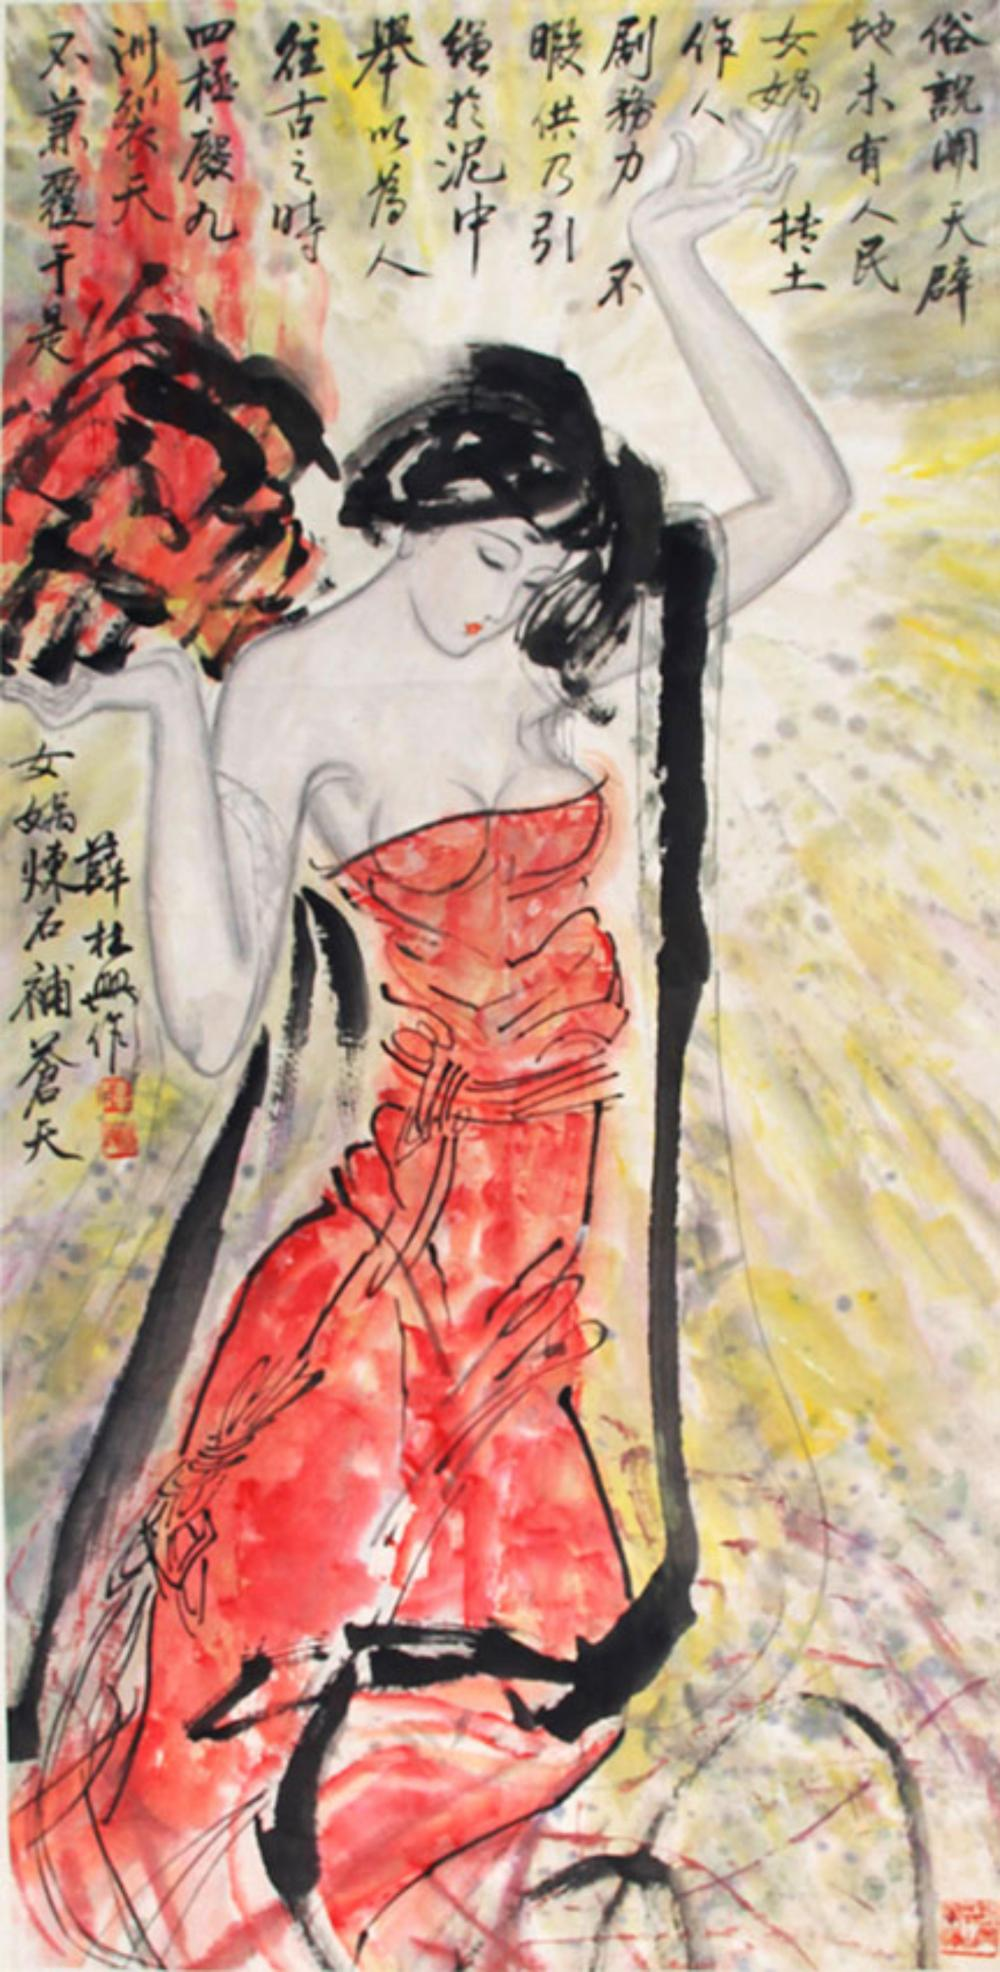 XUE LIN XIN,CHINESE PAINTING ATTRIBUTED TO